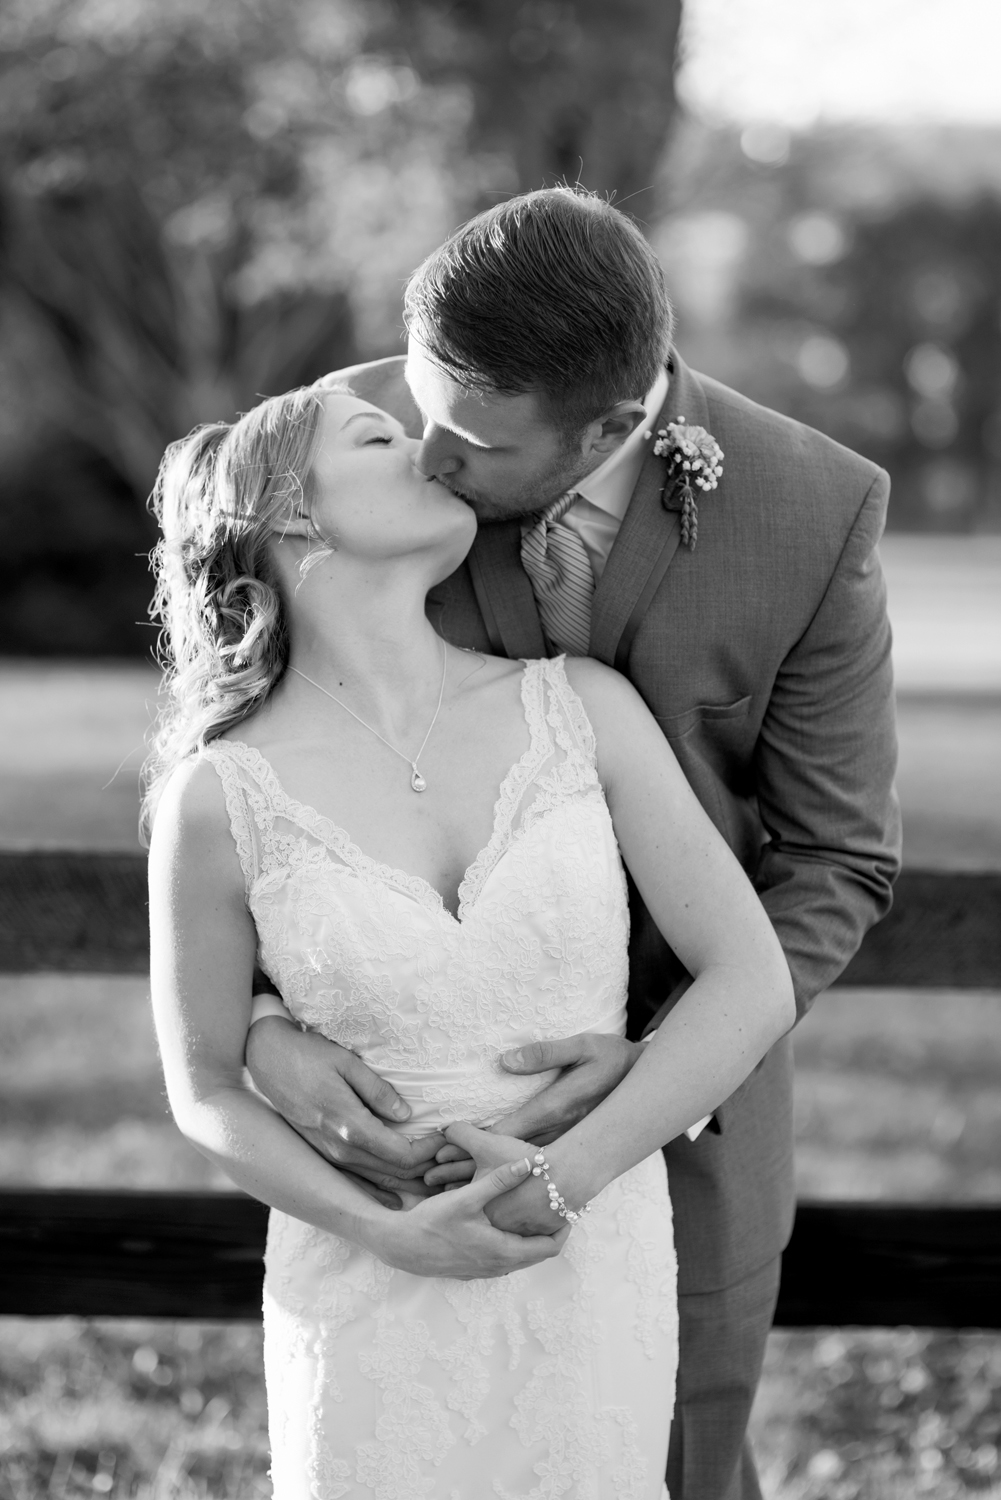 Classic, intimate bride and groom kiss (black and white)